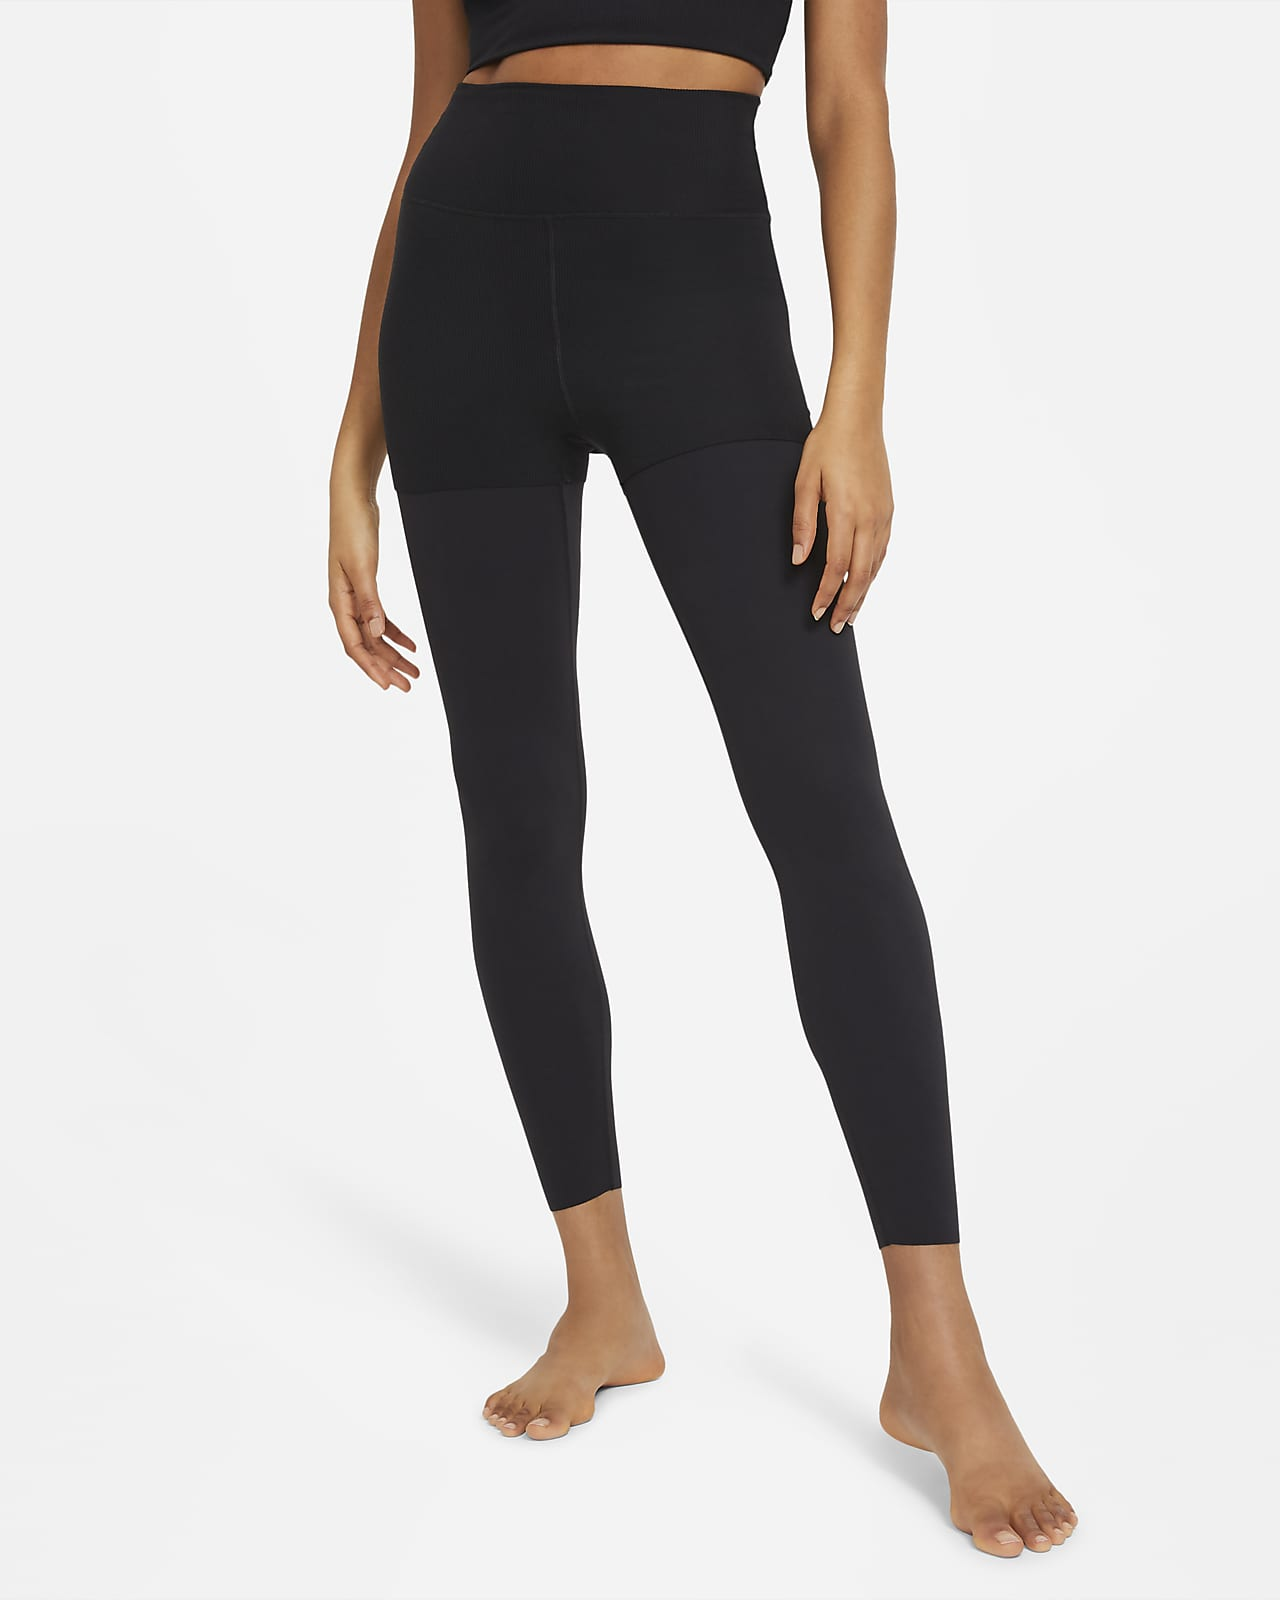 Nike Yoga Luxe Layered leggings i 7/8 lengde til dame